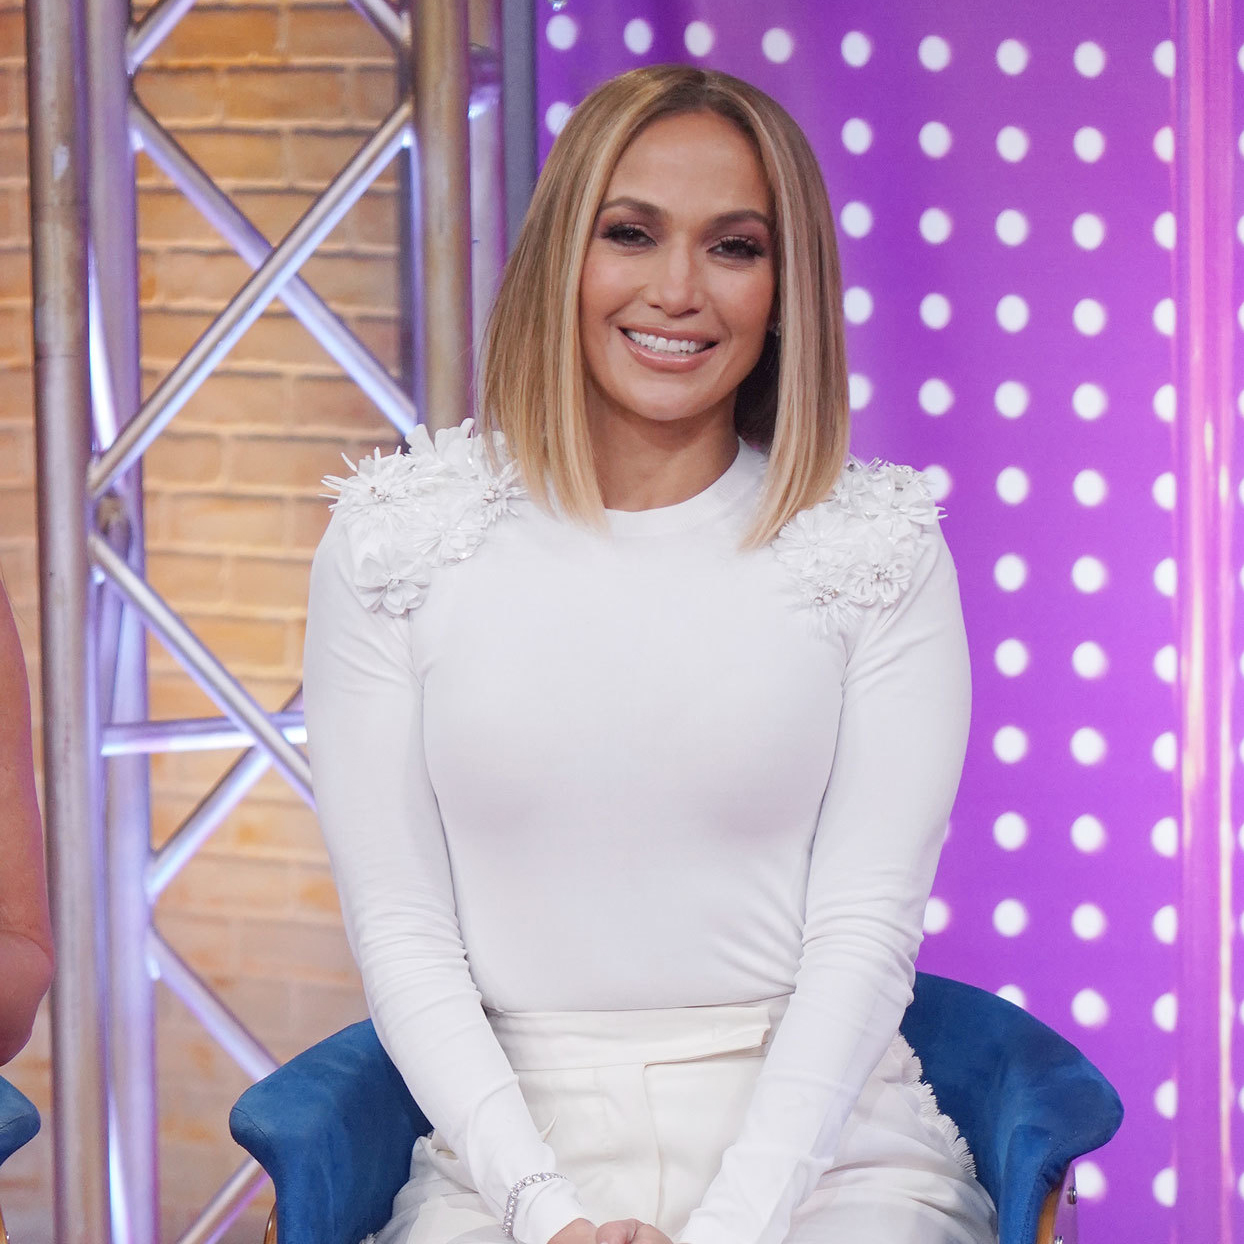 Jennifer Lopez in white outfit sitting on a colorful set